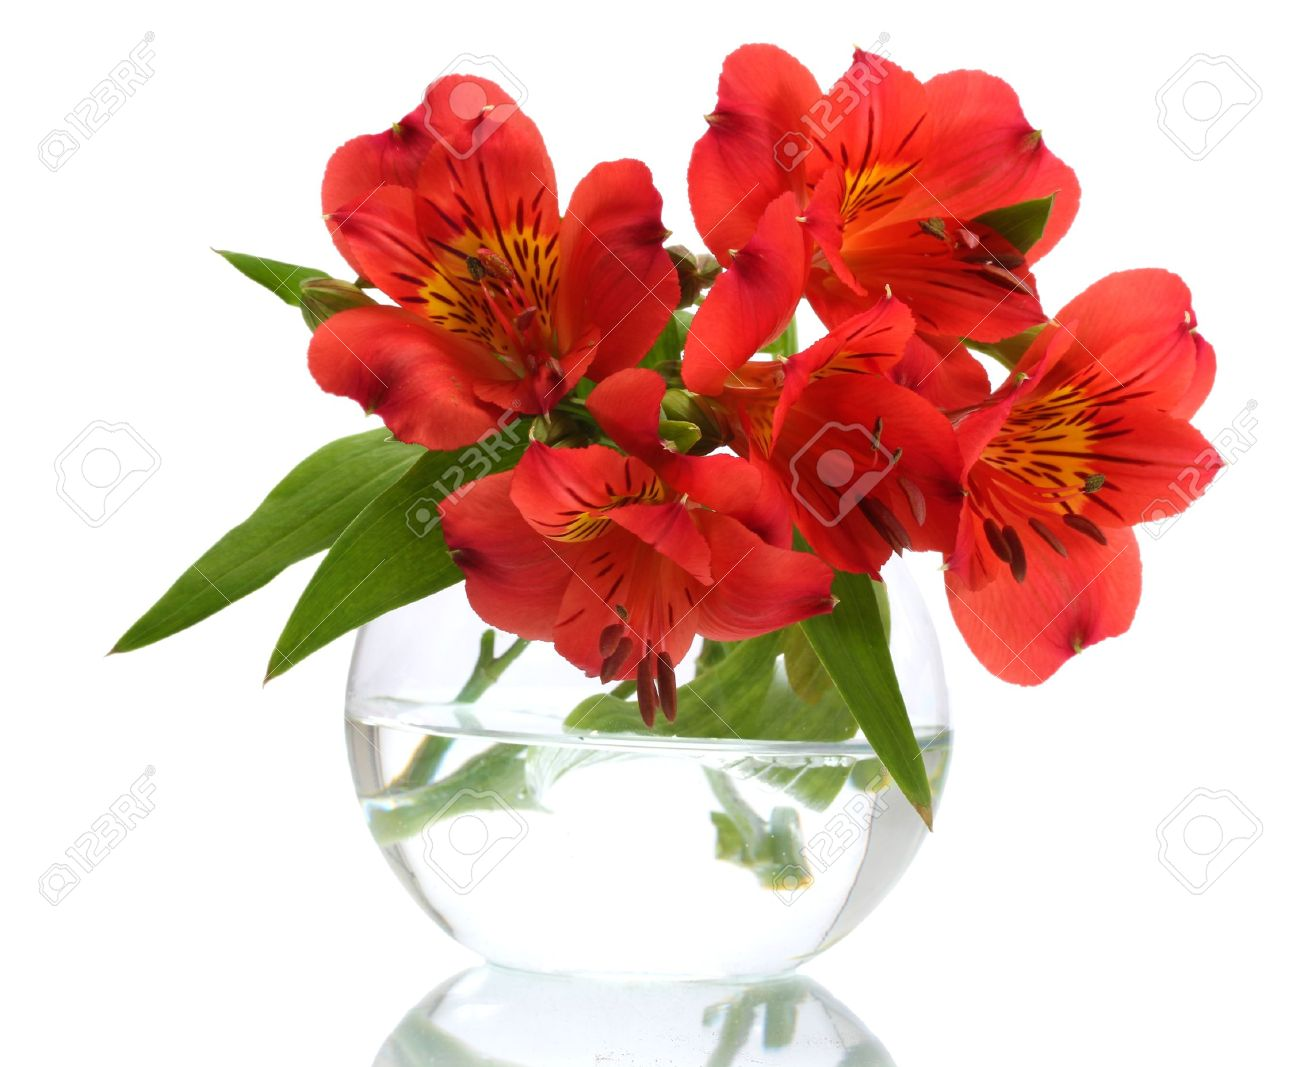 Flower vase images stock pictures royalty free flower vase alstroemeria red flowers in vase isolated on white reviewsmspy